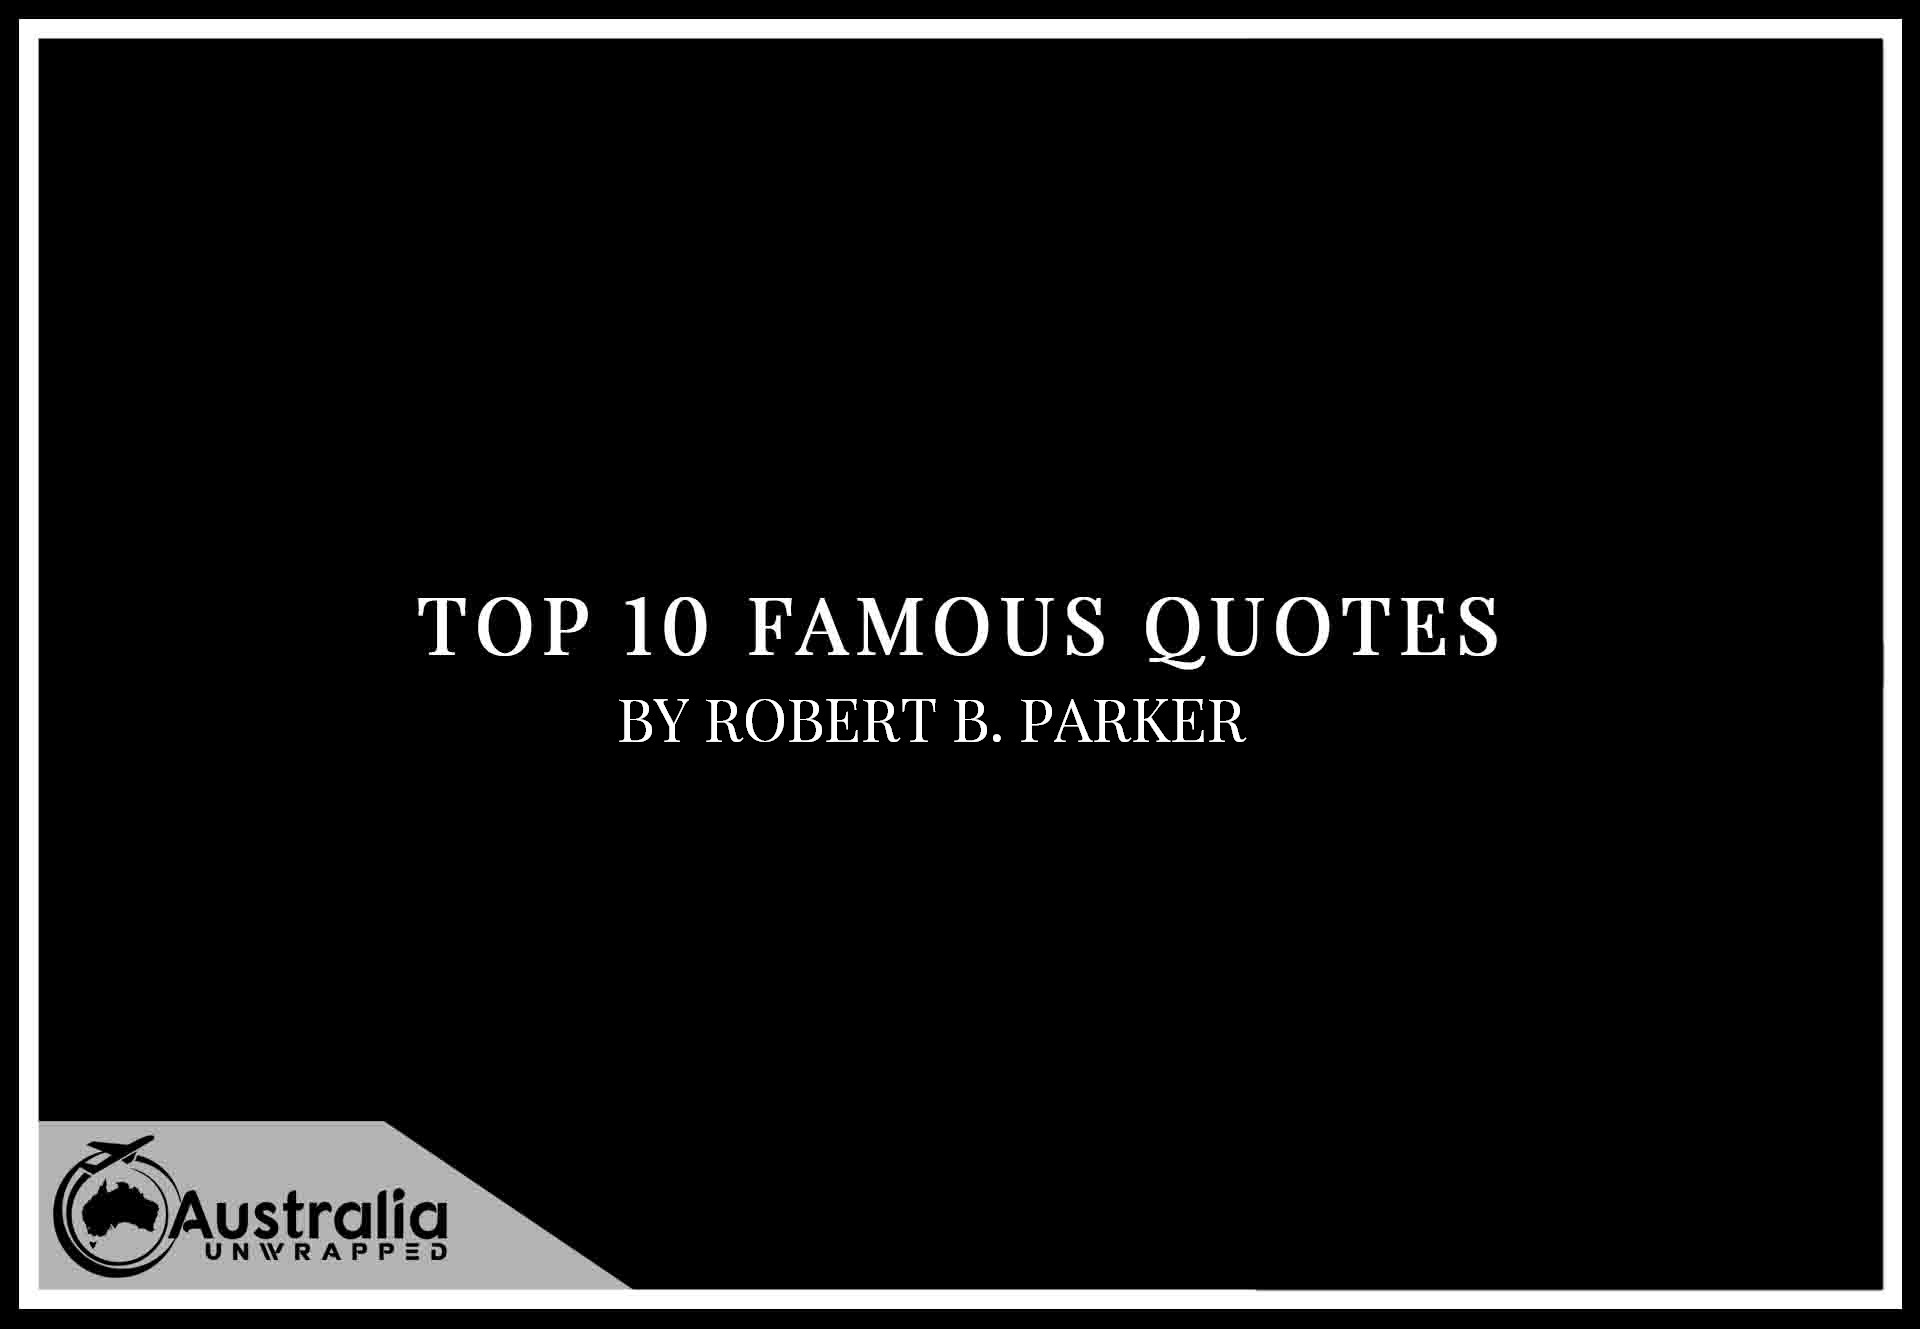 Top 10 Famous Quotes by Author Robert B. Parker